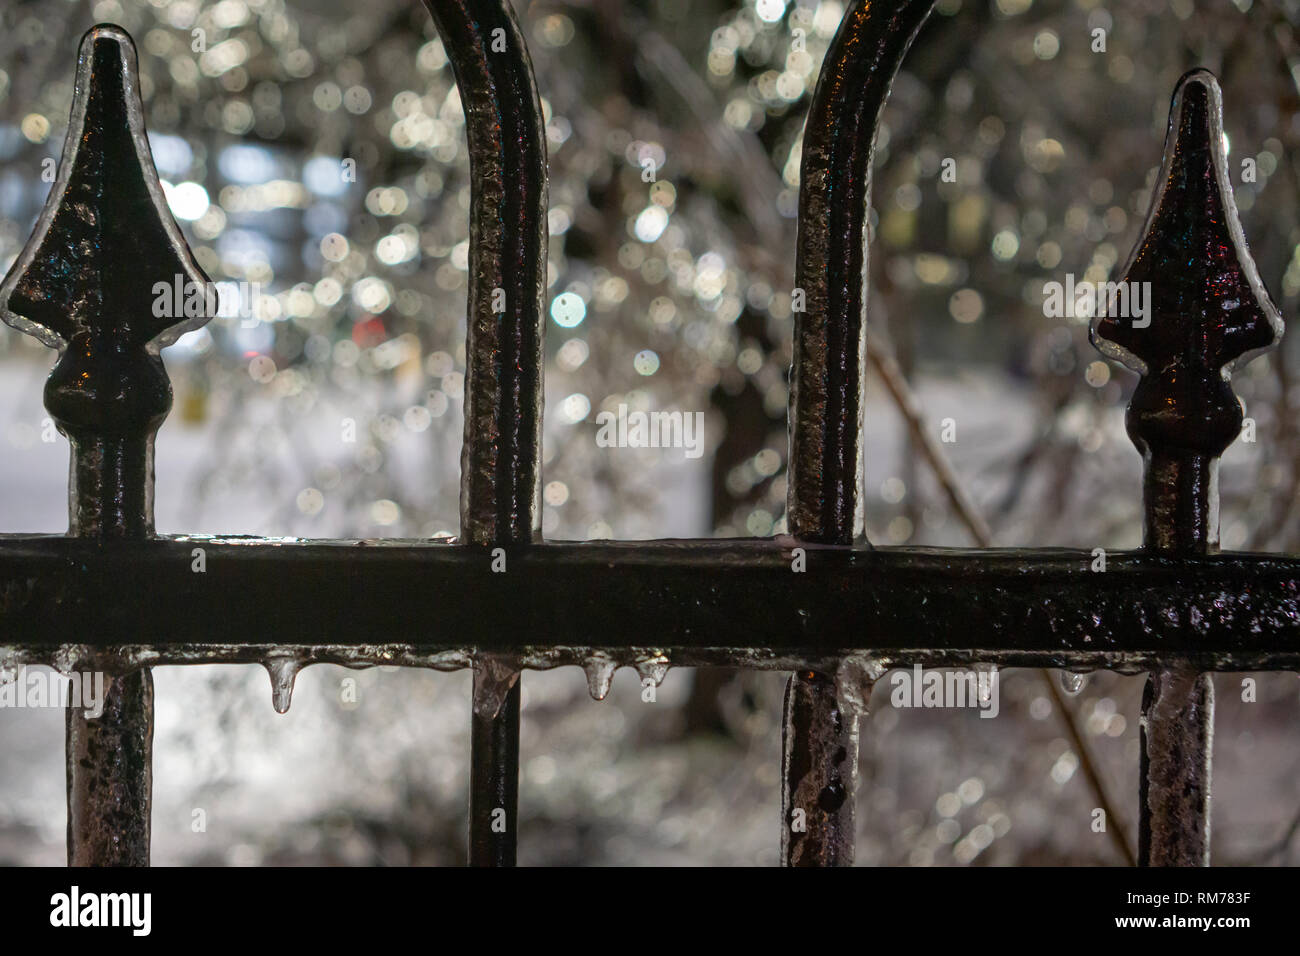 Even though the Toronto ice storm always causes a lot of real damage in the city there is undeniable beauty it brings with its literal 'silver lining' - Stock Image